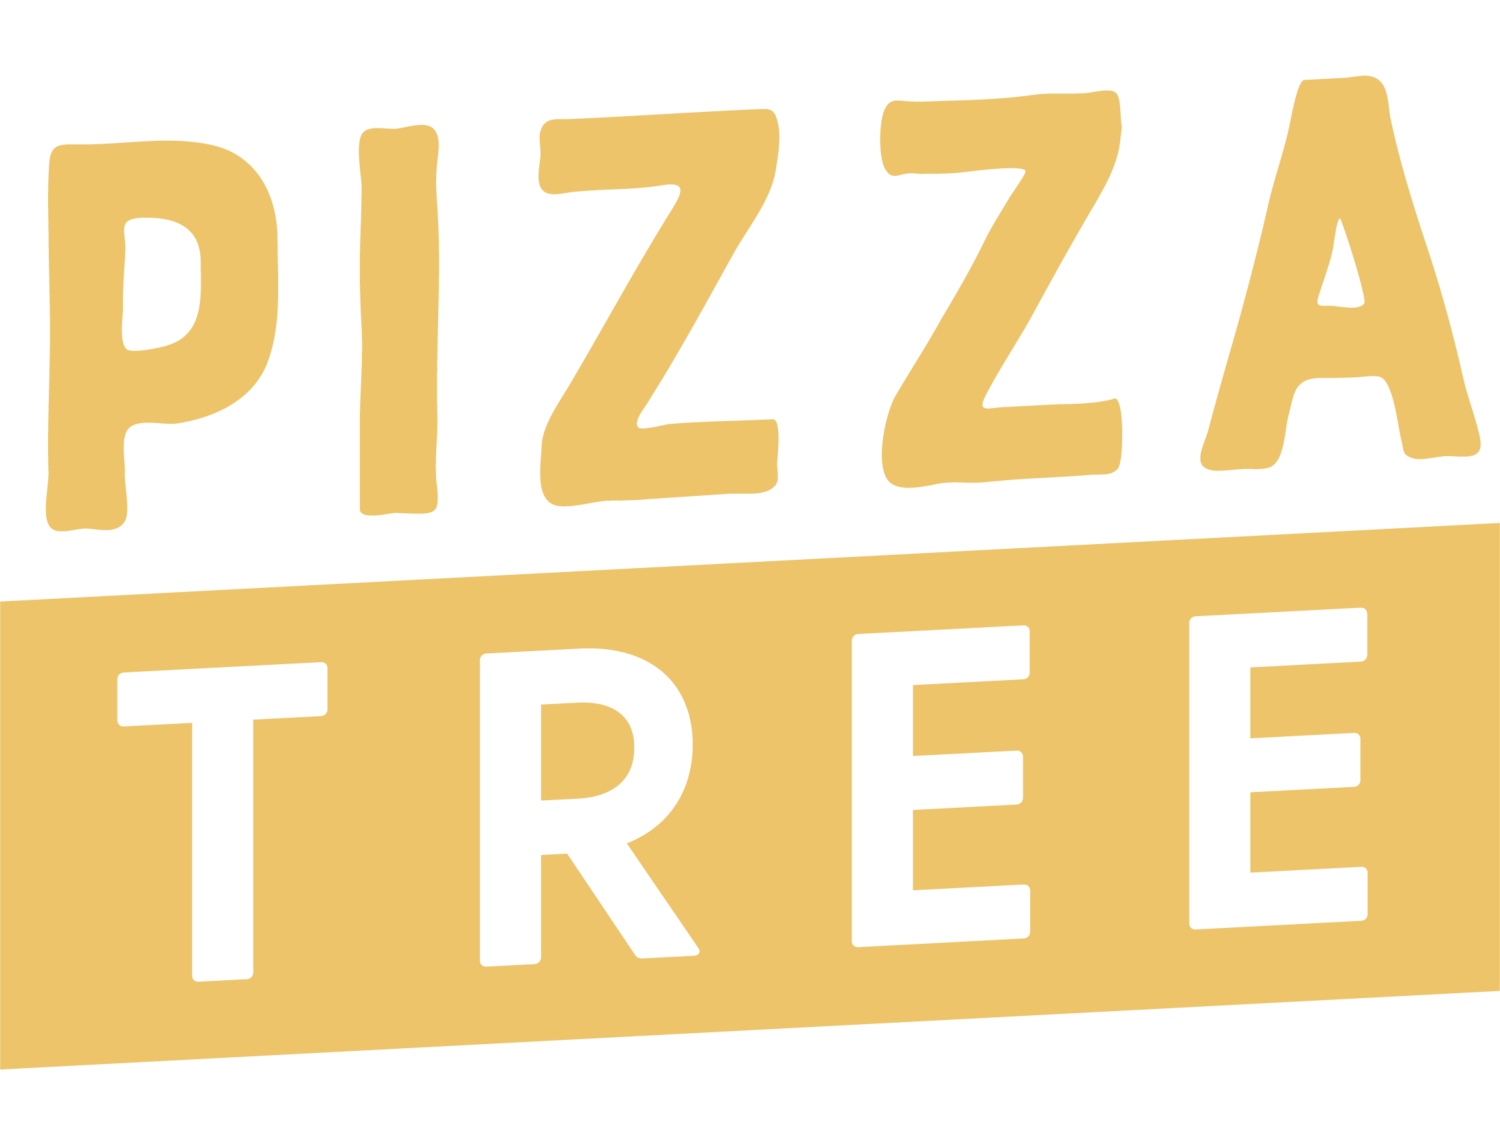 Pizza Tree